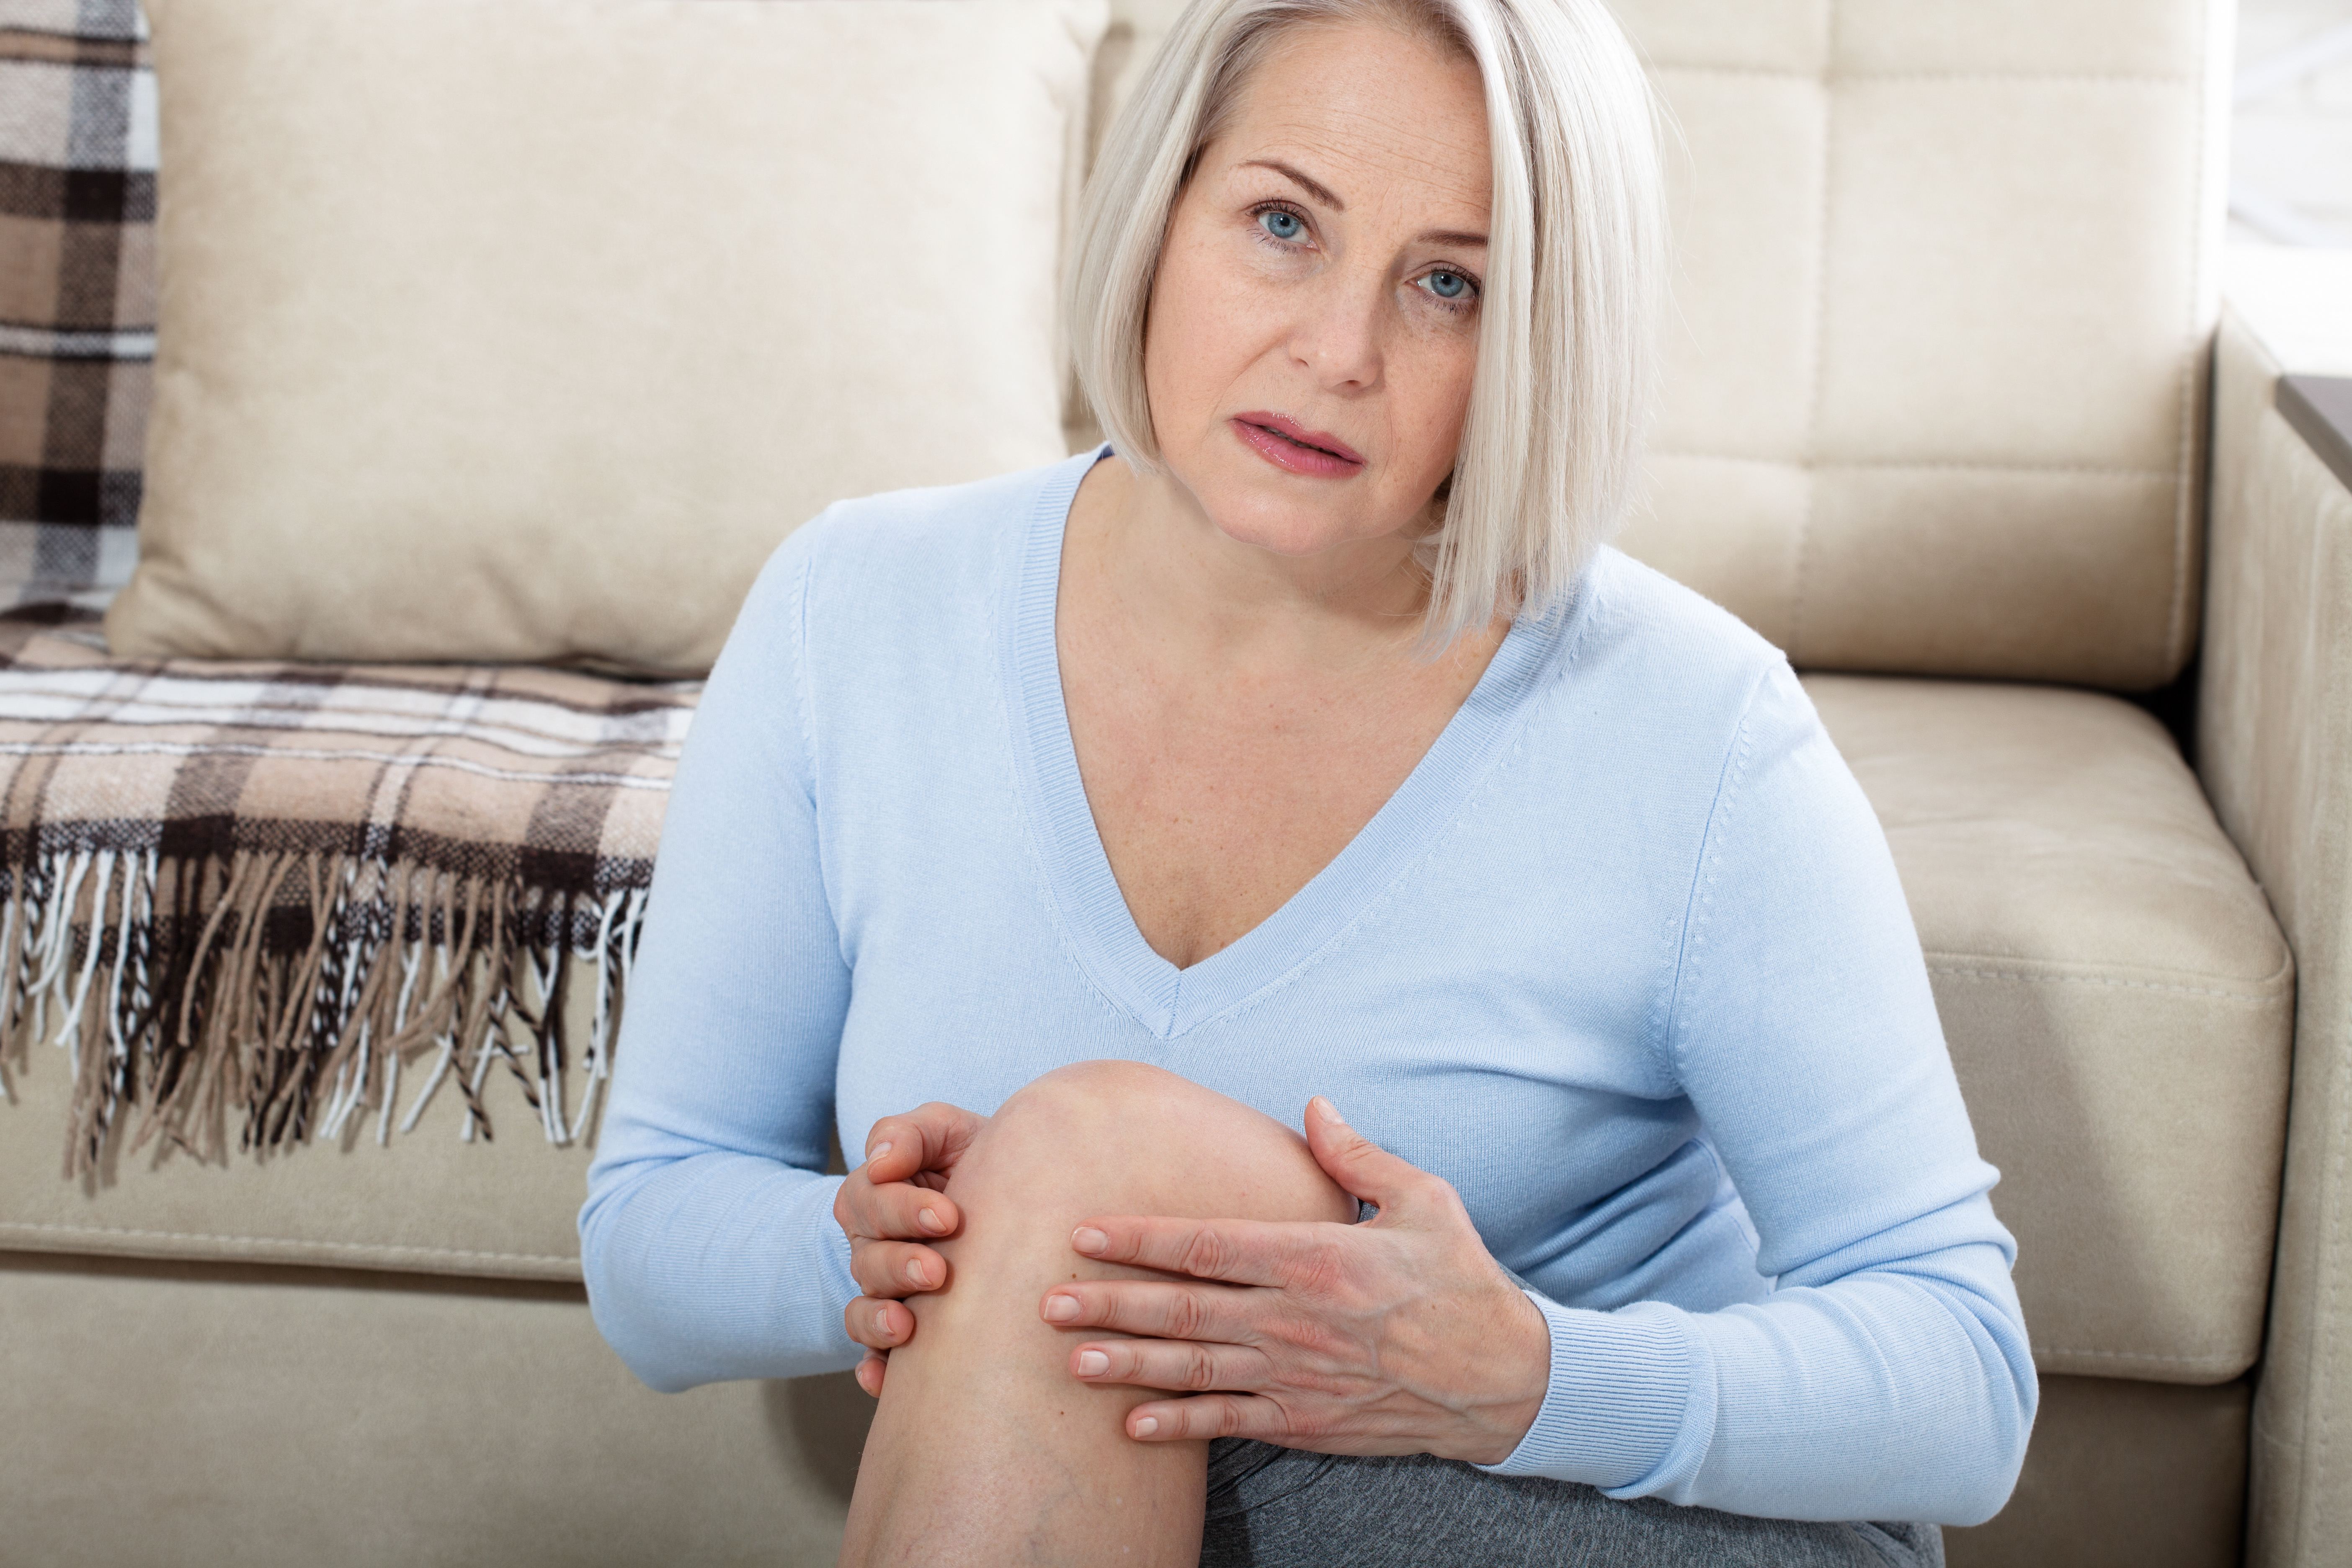 Can Ovarian Cancer Cause Numbness in a Leg?